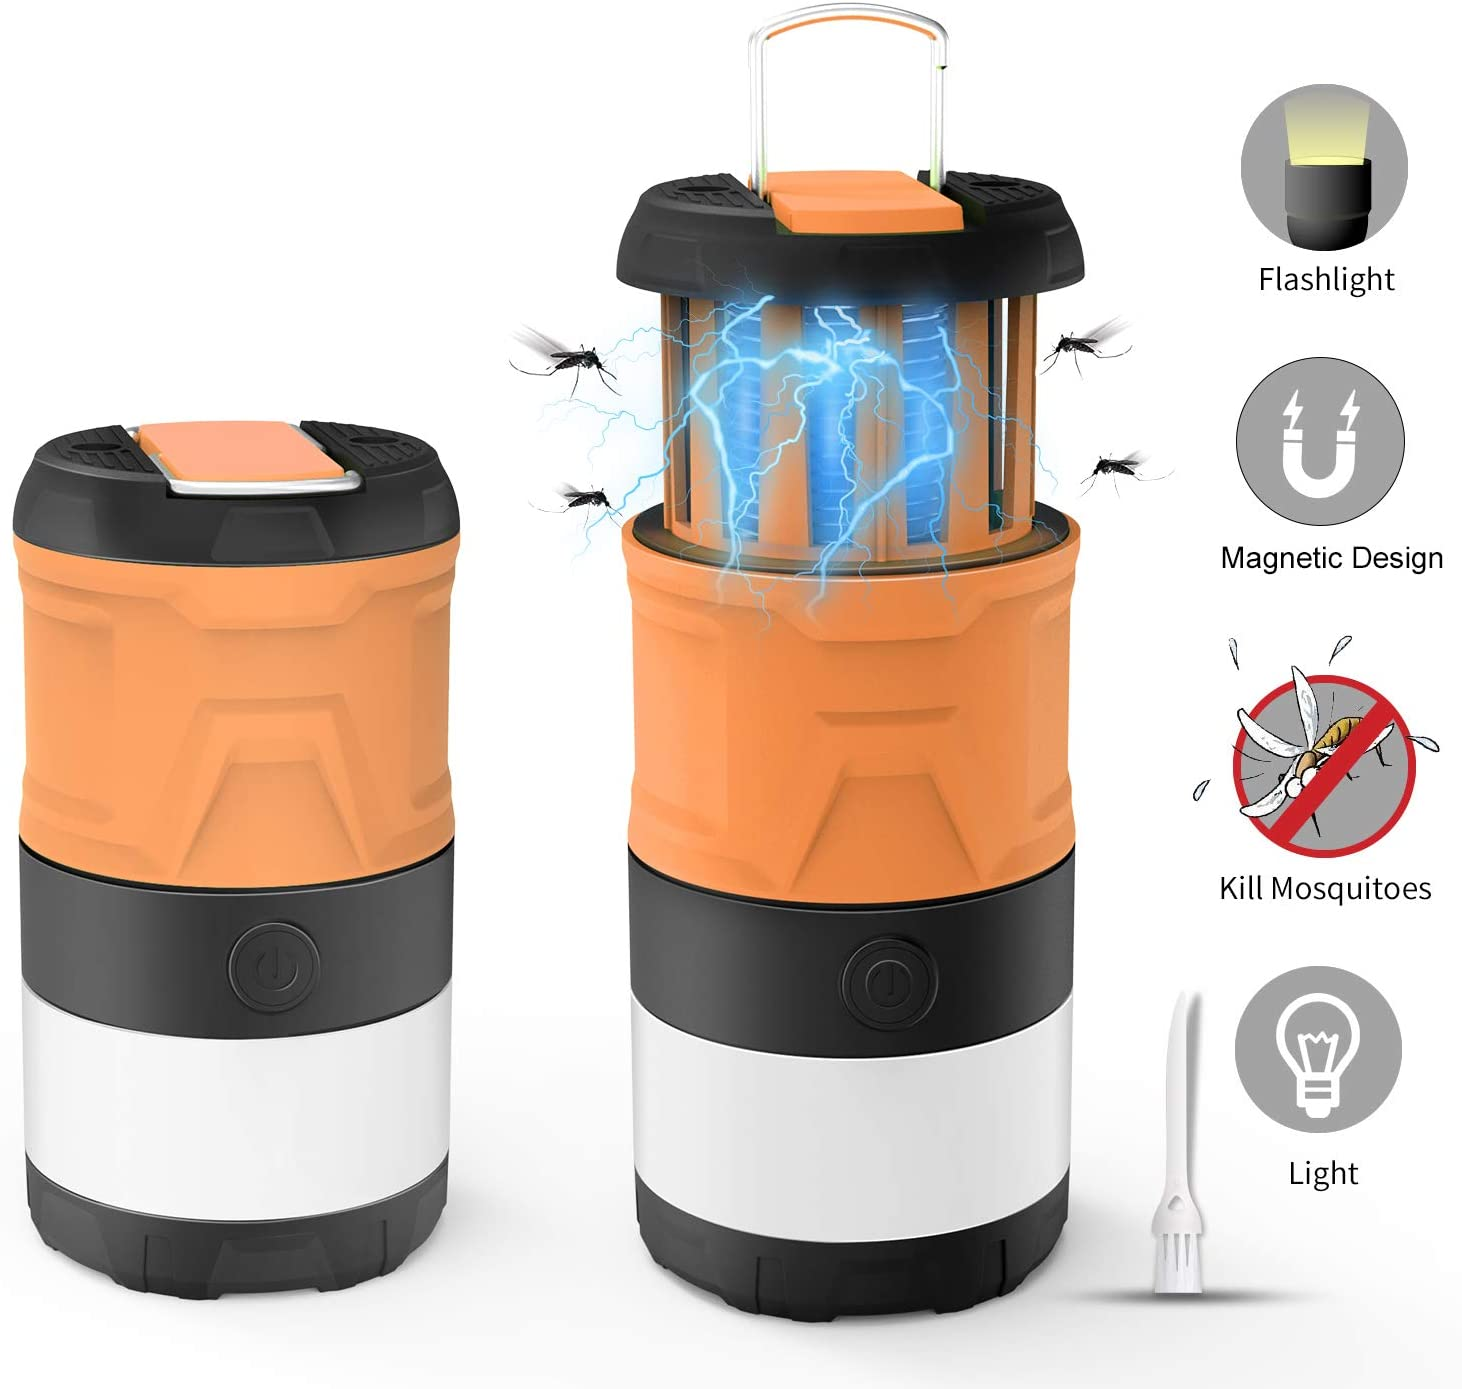 Camping Lantern, LED Camping Lamp, Bug Zapper, Magnetic Telescopic IPX4 Waterproof Flashlight, 3-in-1 Camping Light with 2000mAh Rechargeable Battery for Camping Outdoor Hiking Emergency Lighting: Sports & Outdoors